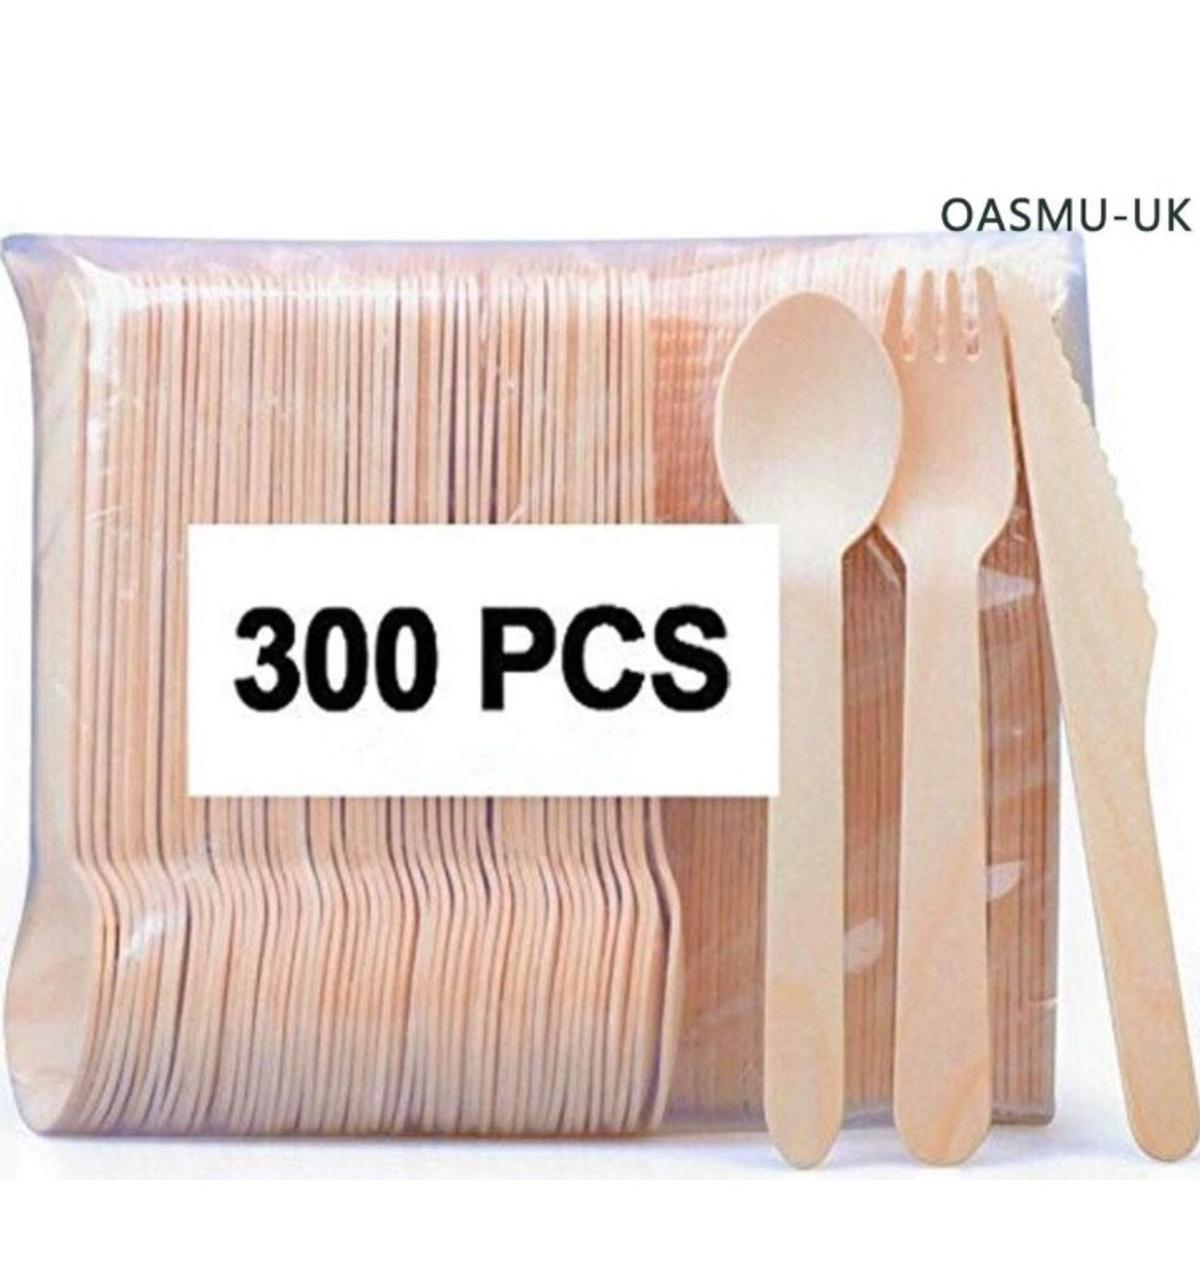 300 Piece Disposable Wooden Cutlery In Bb1 Blackburn For